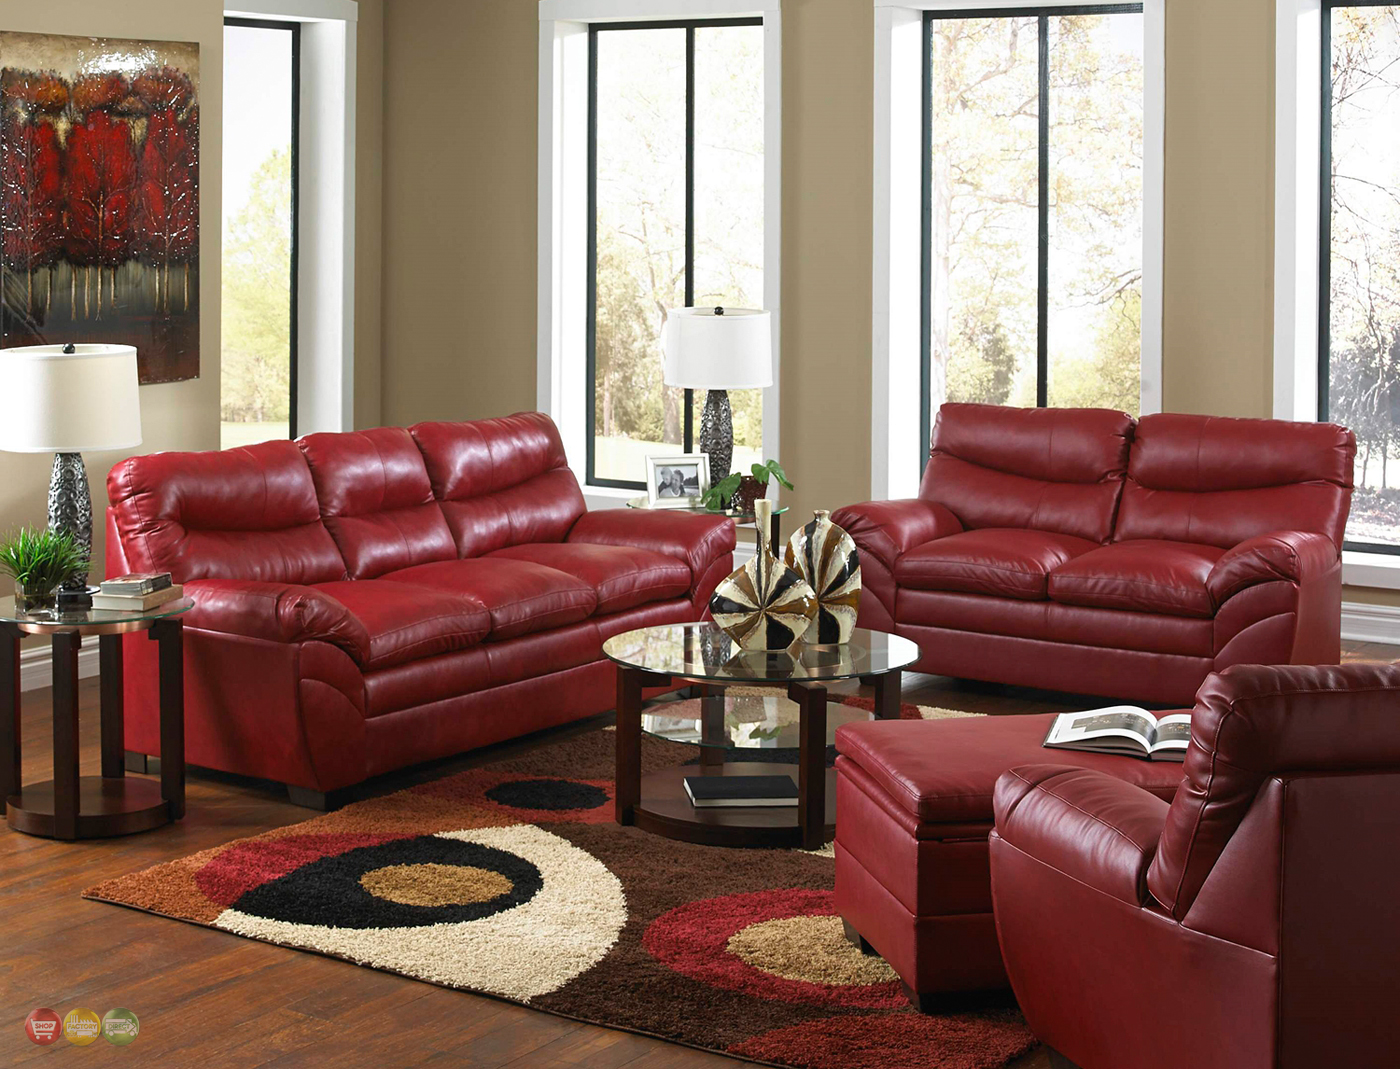 circle red leather living room furniture average person